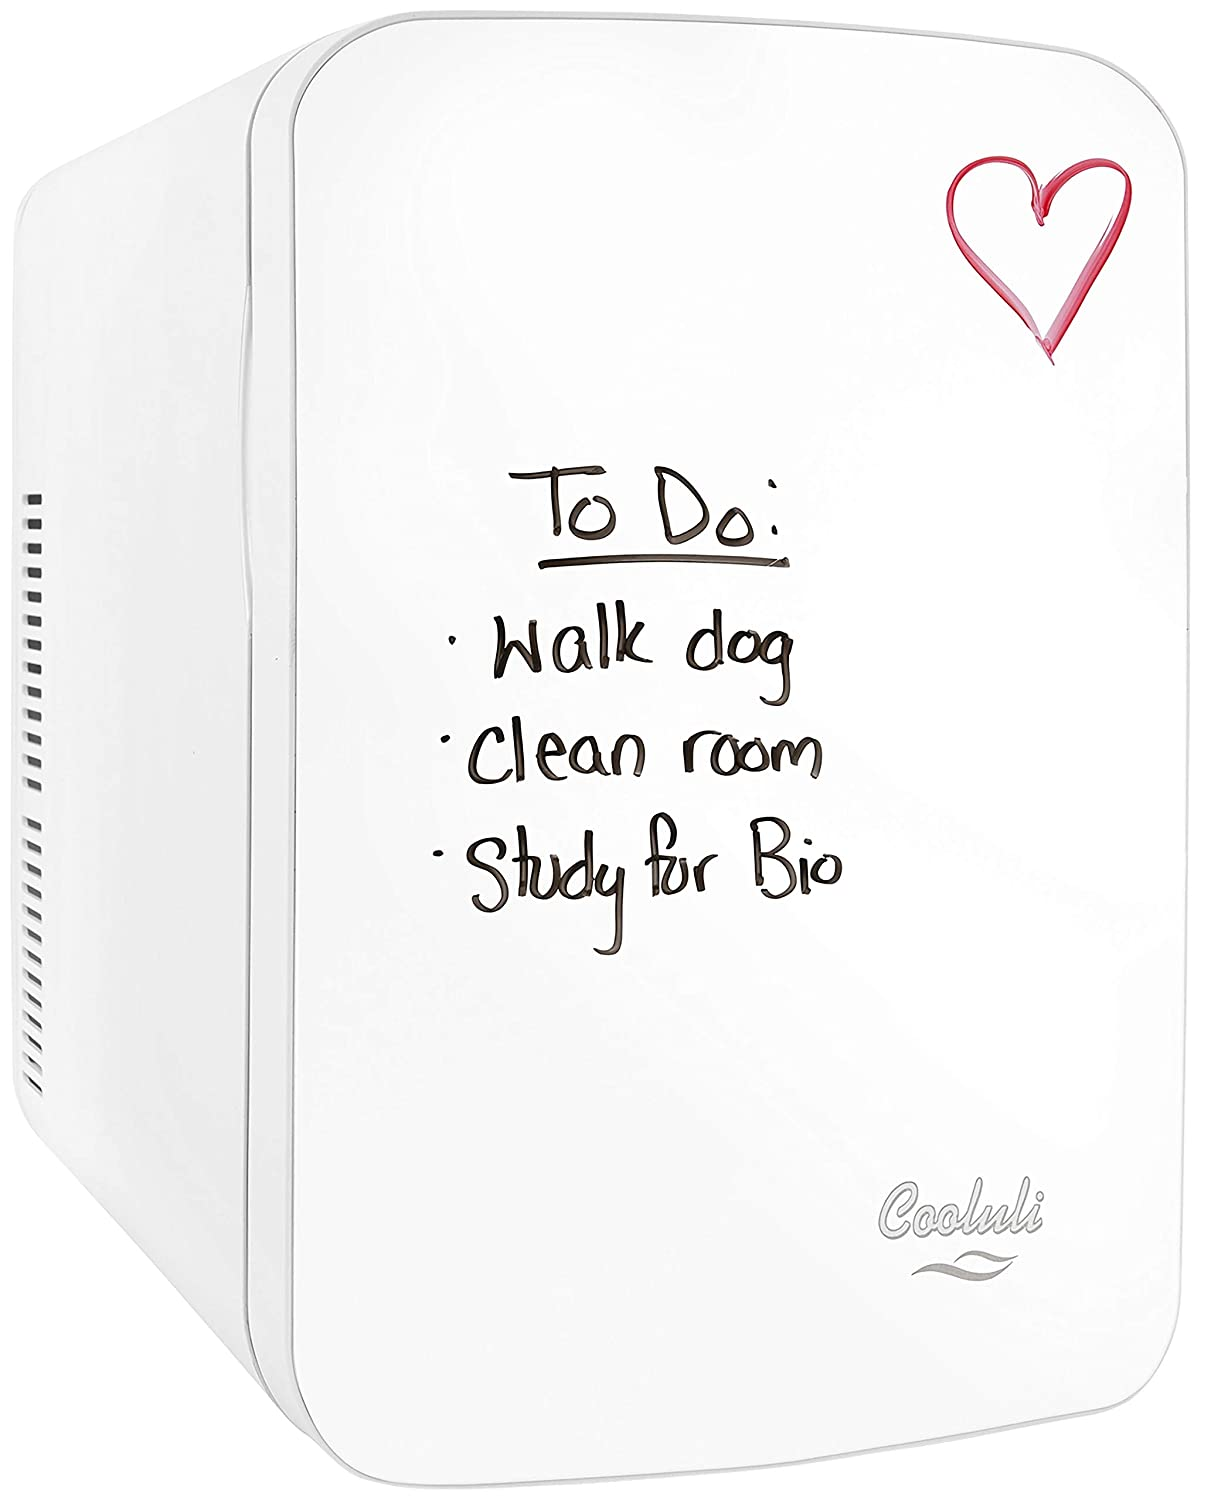 Cooluli Vibe-15-liter Cooler/Warmer Mini Fridge with Dry-Erase Board for Dorms, Offices, Homes & Cars